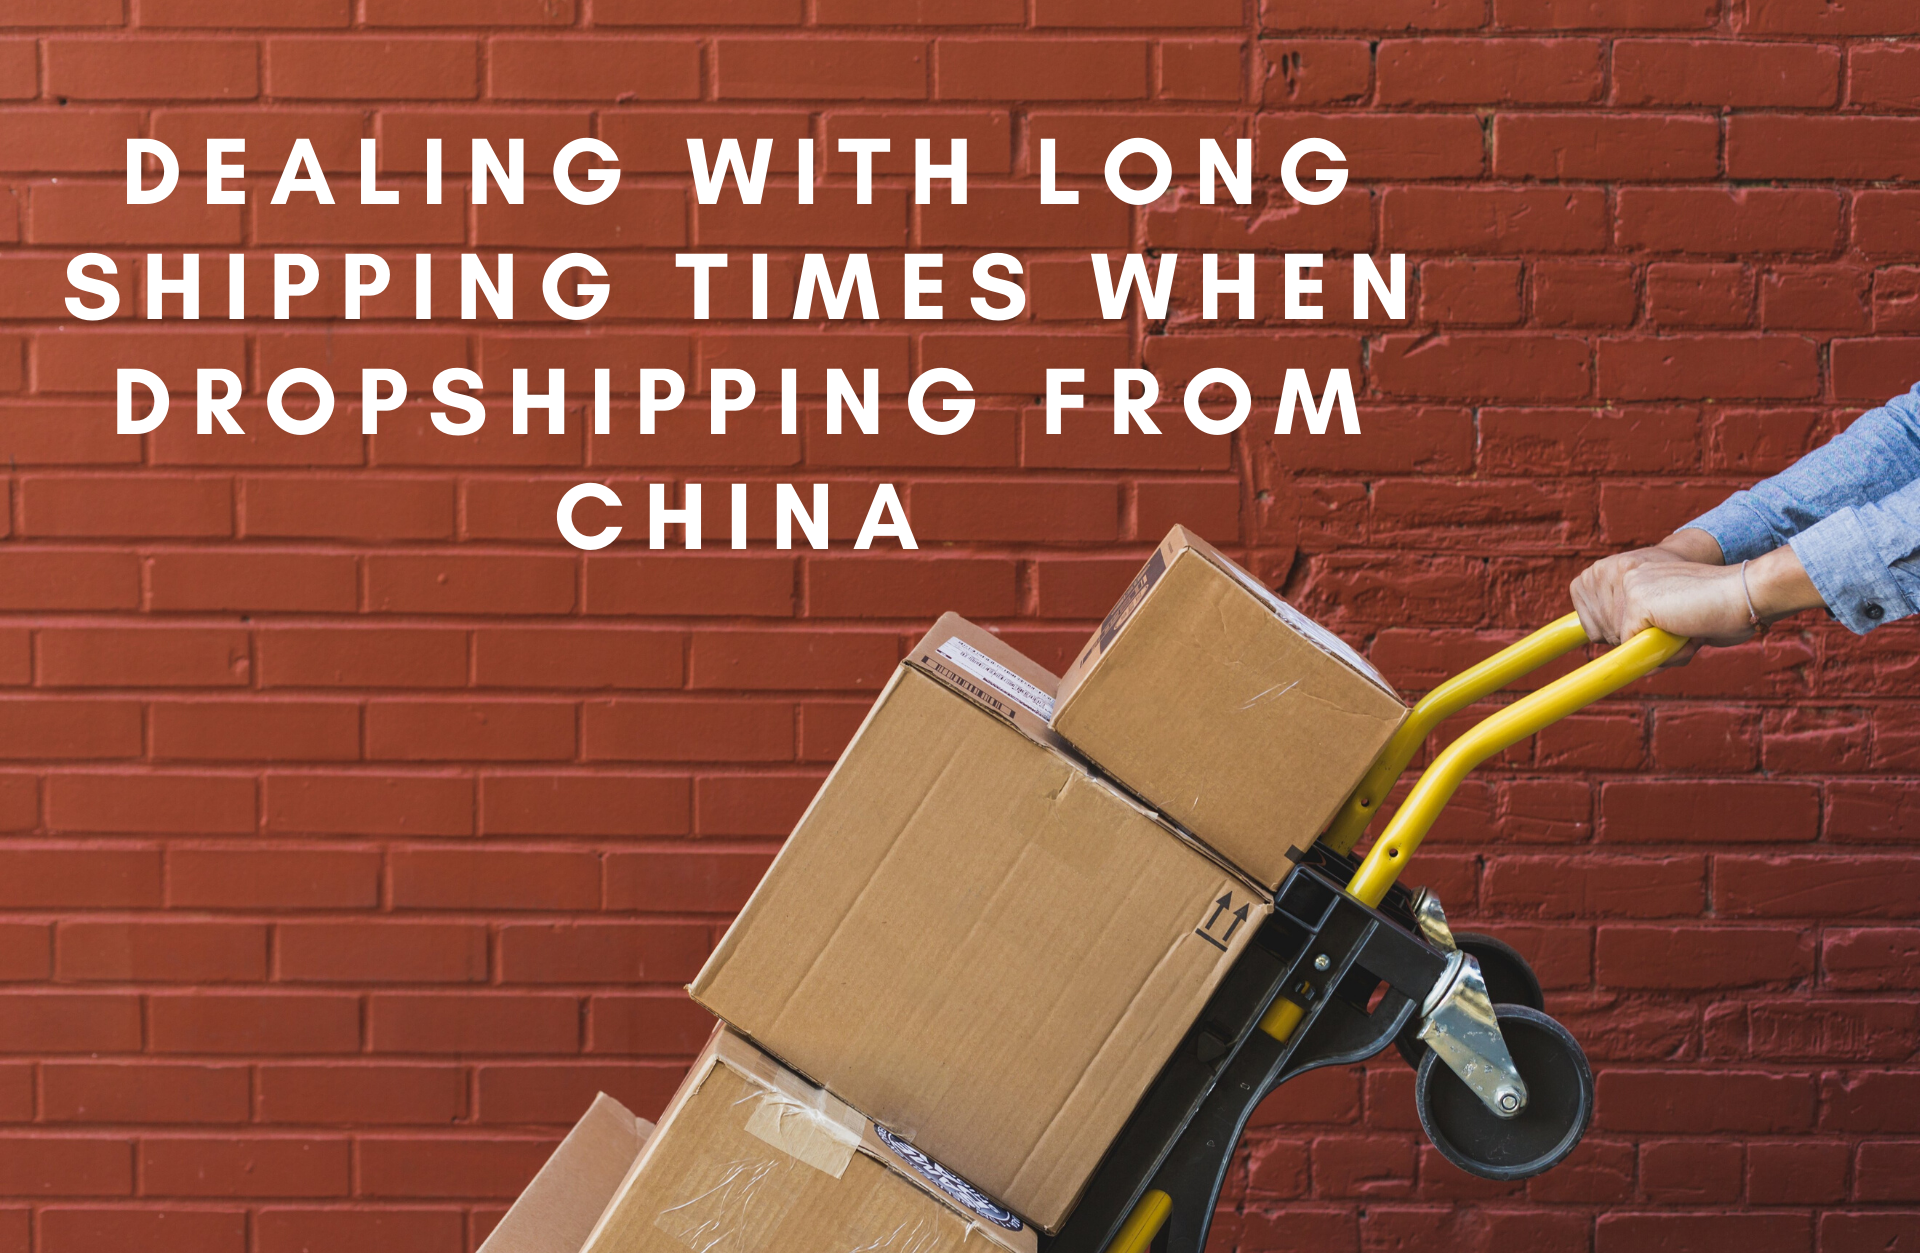 Dealing with long shipping times when dropshipping from china - ecomrecord